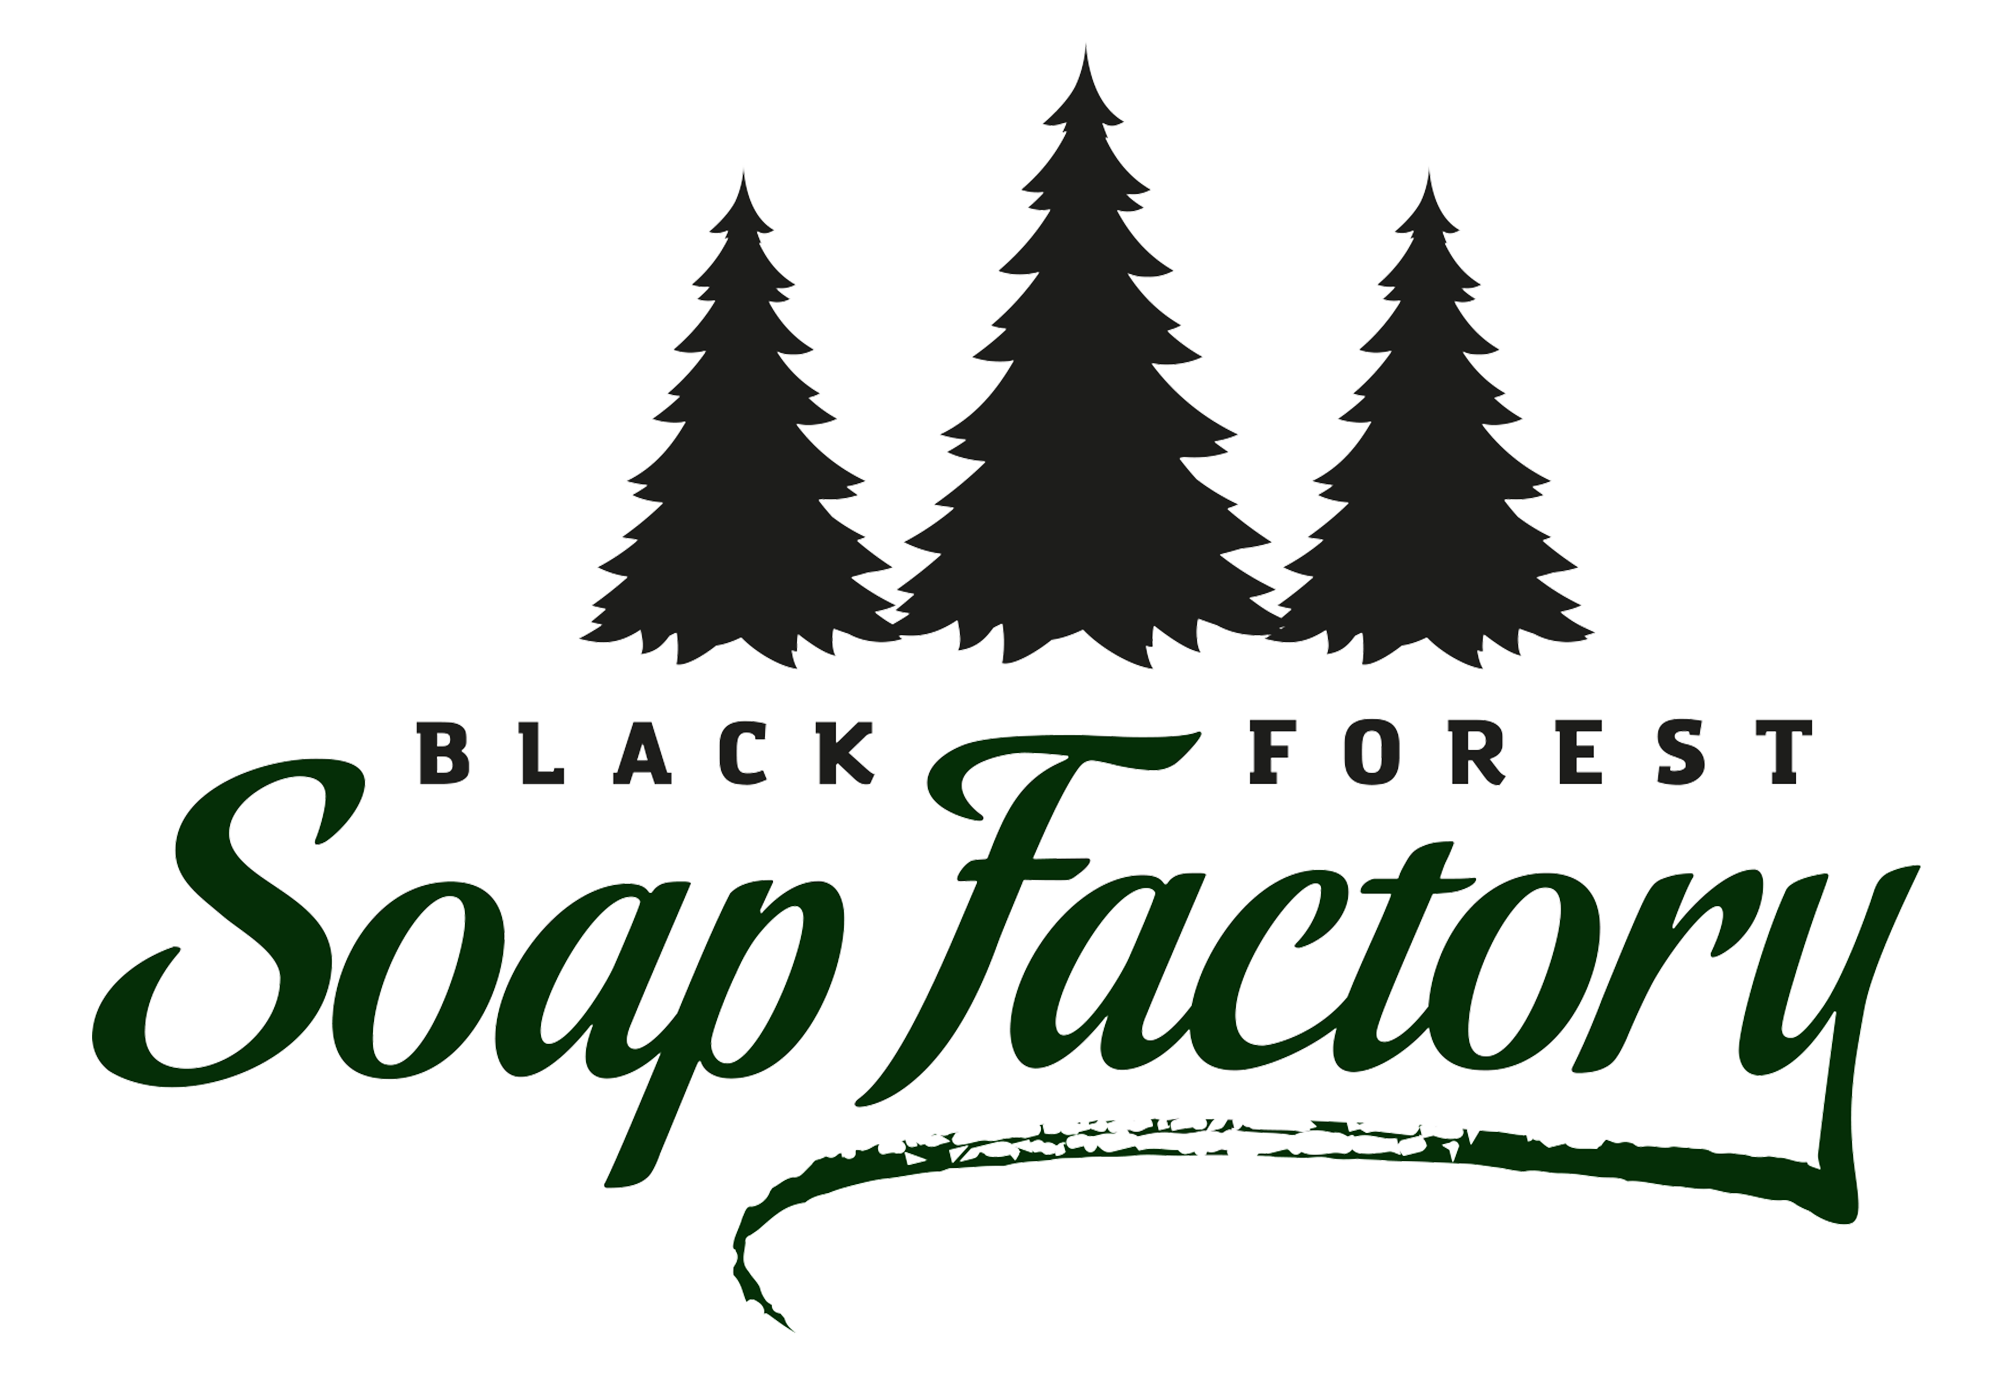 Black Forest Soap Factory